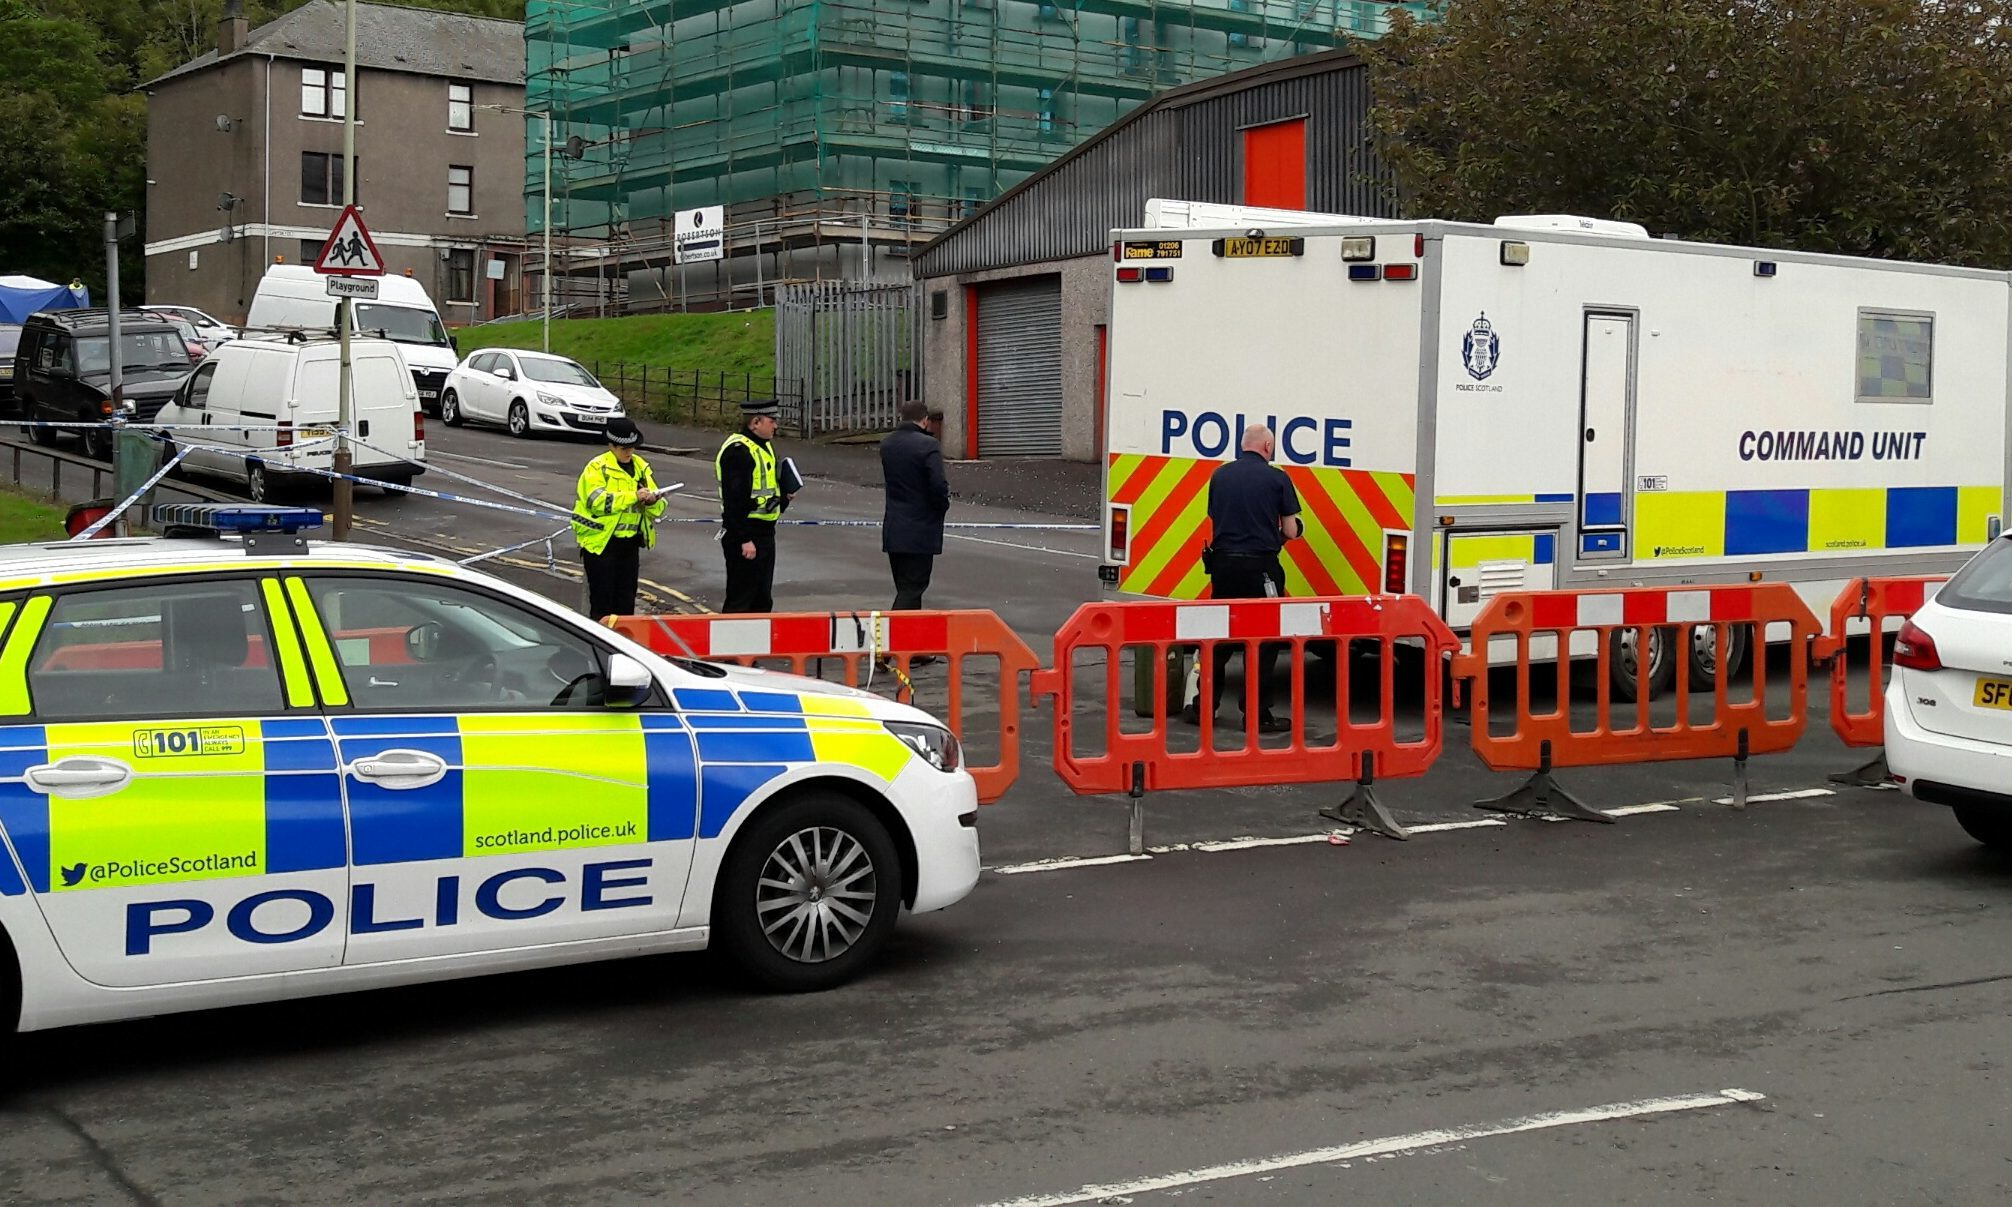 Part of the major police presence in Lawton Road.